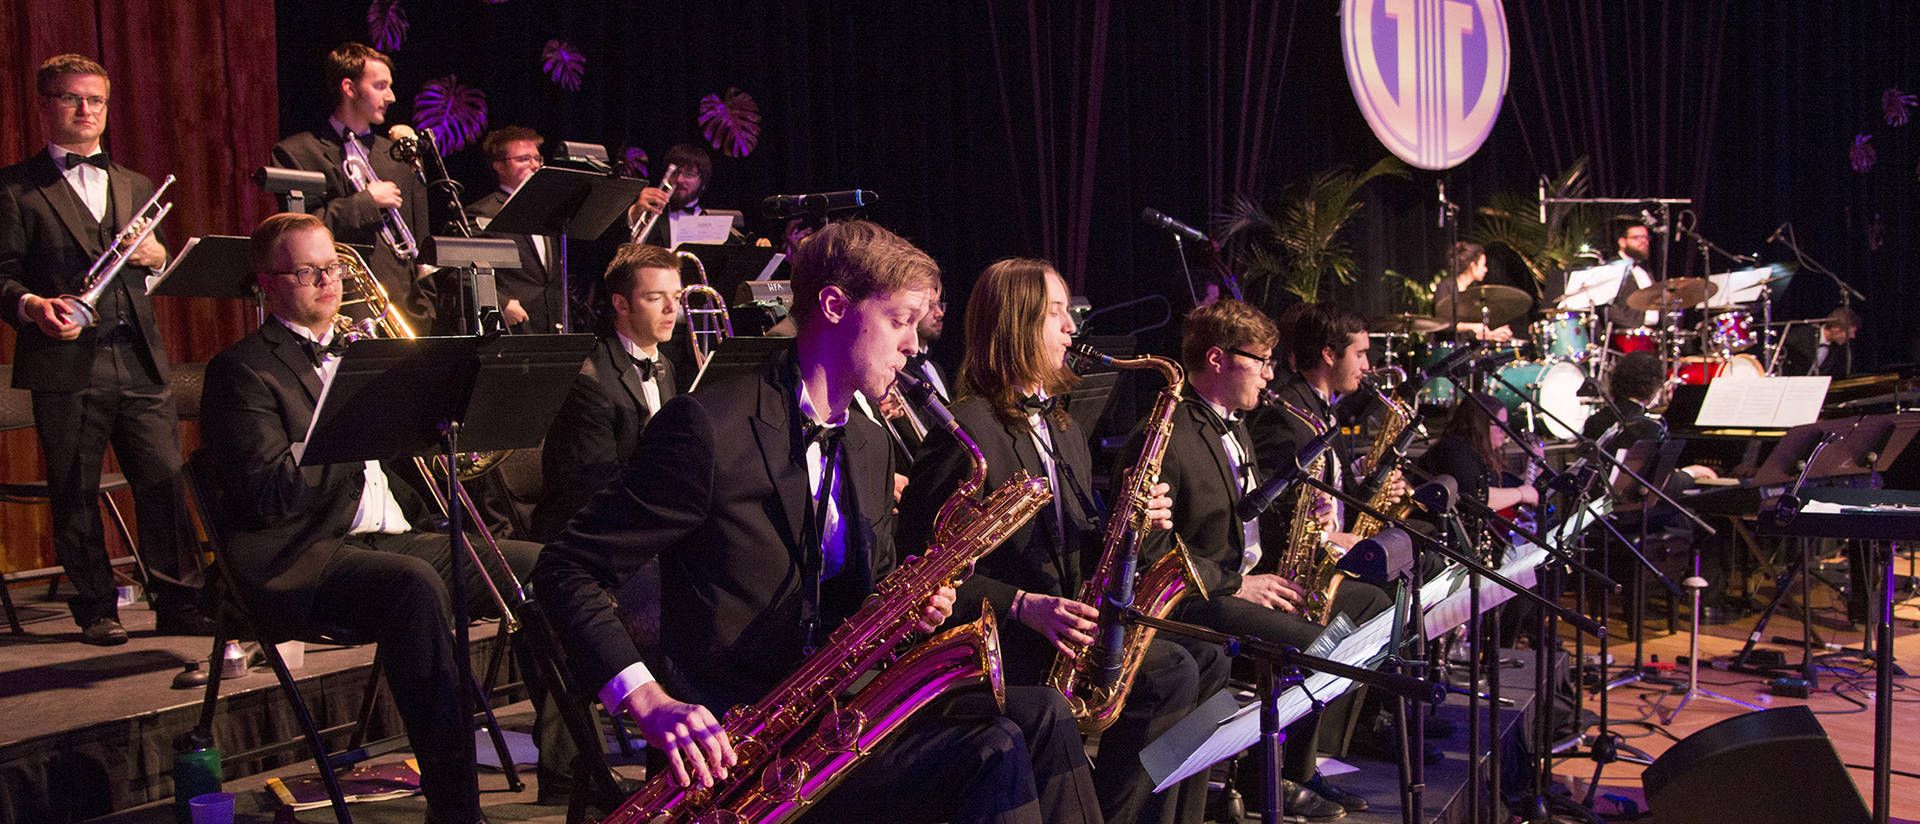 Jazz I performs at Gatsby's Gala 2017